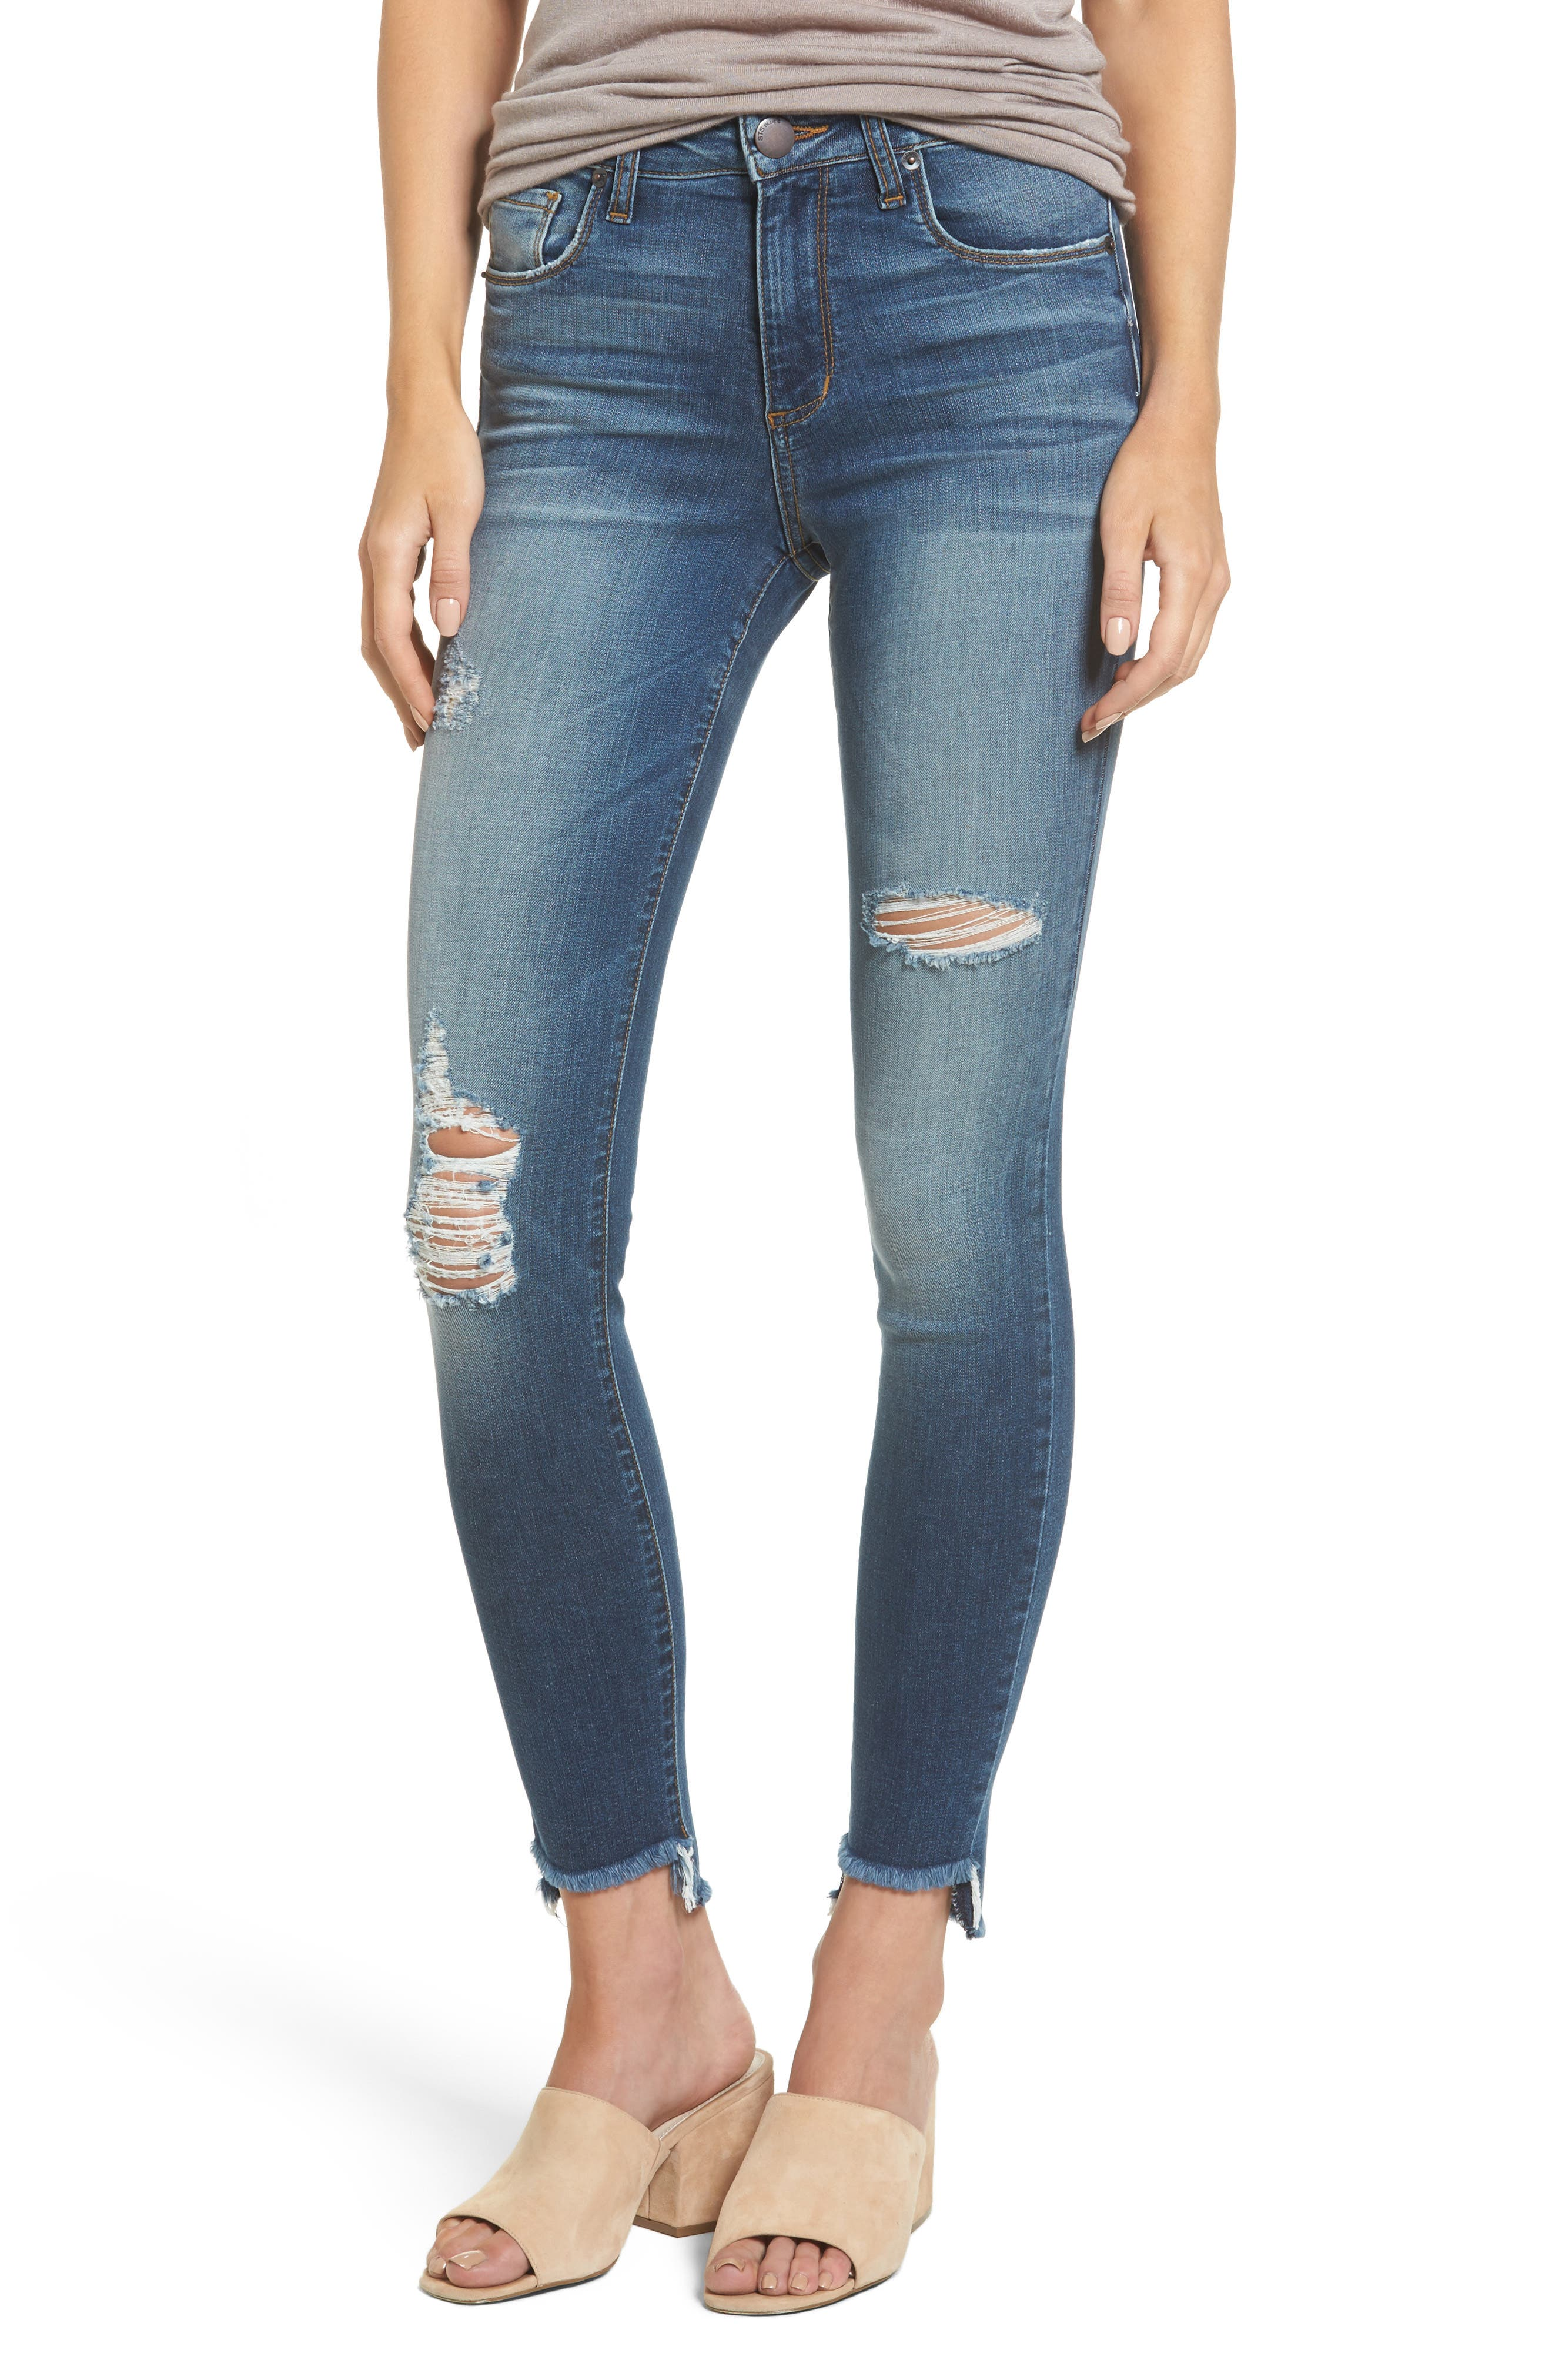 Alternate Image 1 Selected - STS Blue Ellie Step Hem Ripped High Waist Skinny Jeans